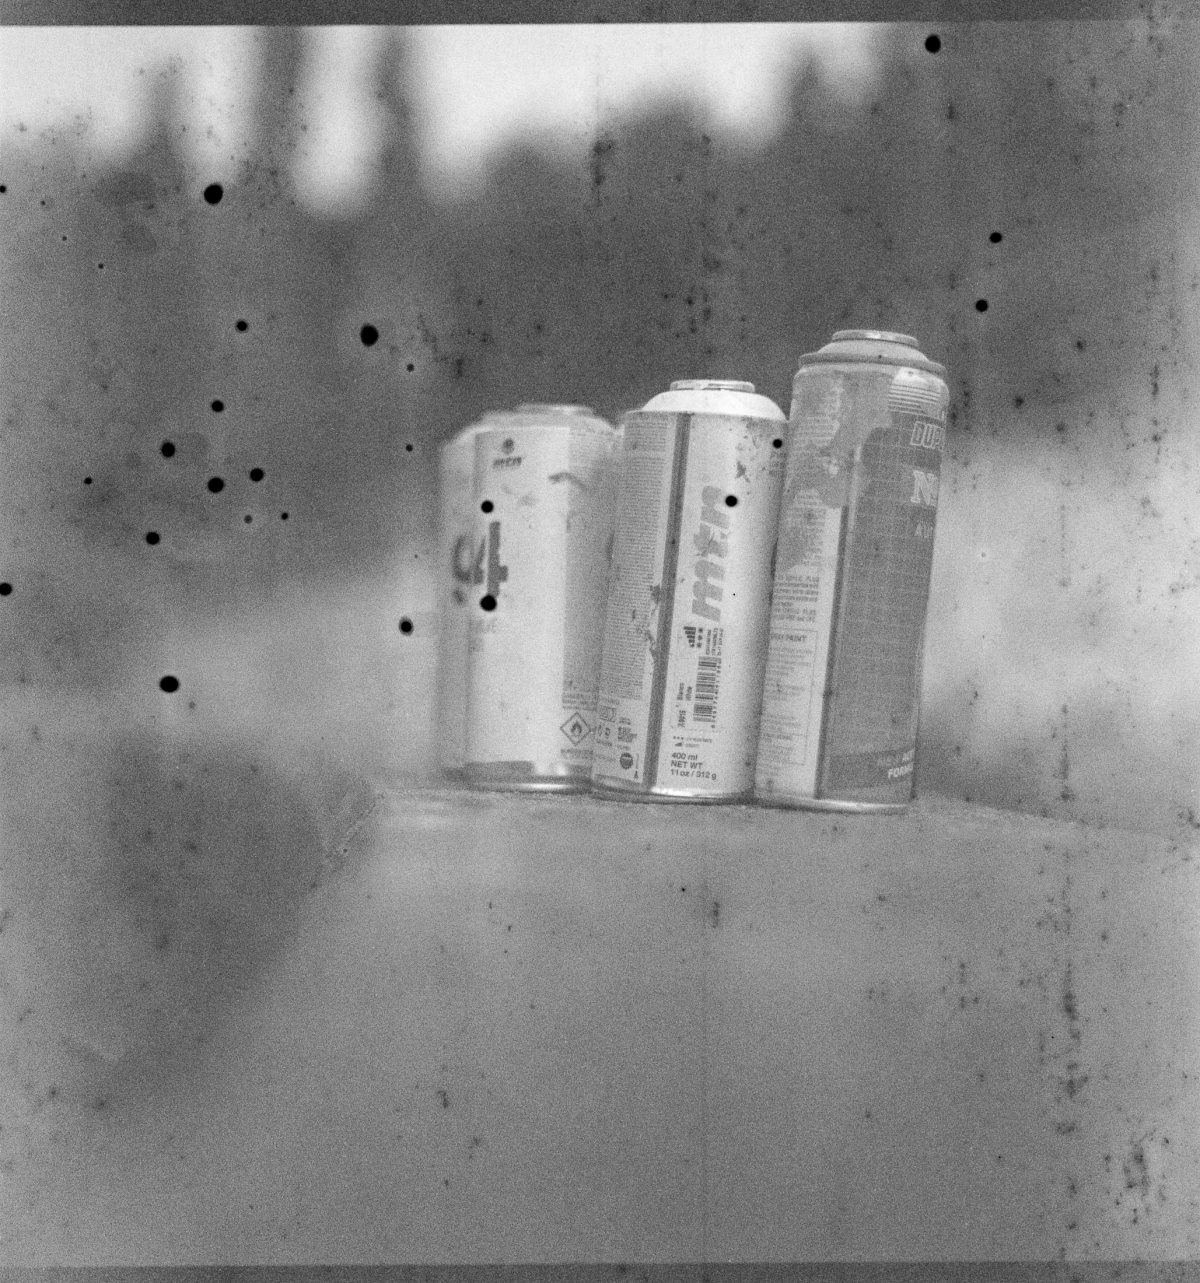 Discarded spray pint cans on a wall, highly degraded film results in black blobs and lines on the film.